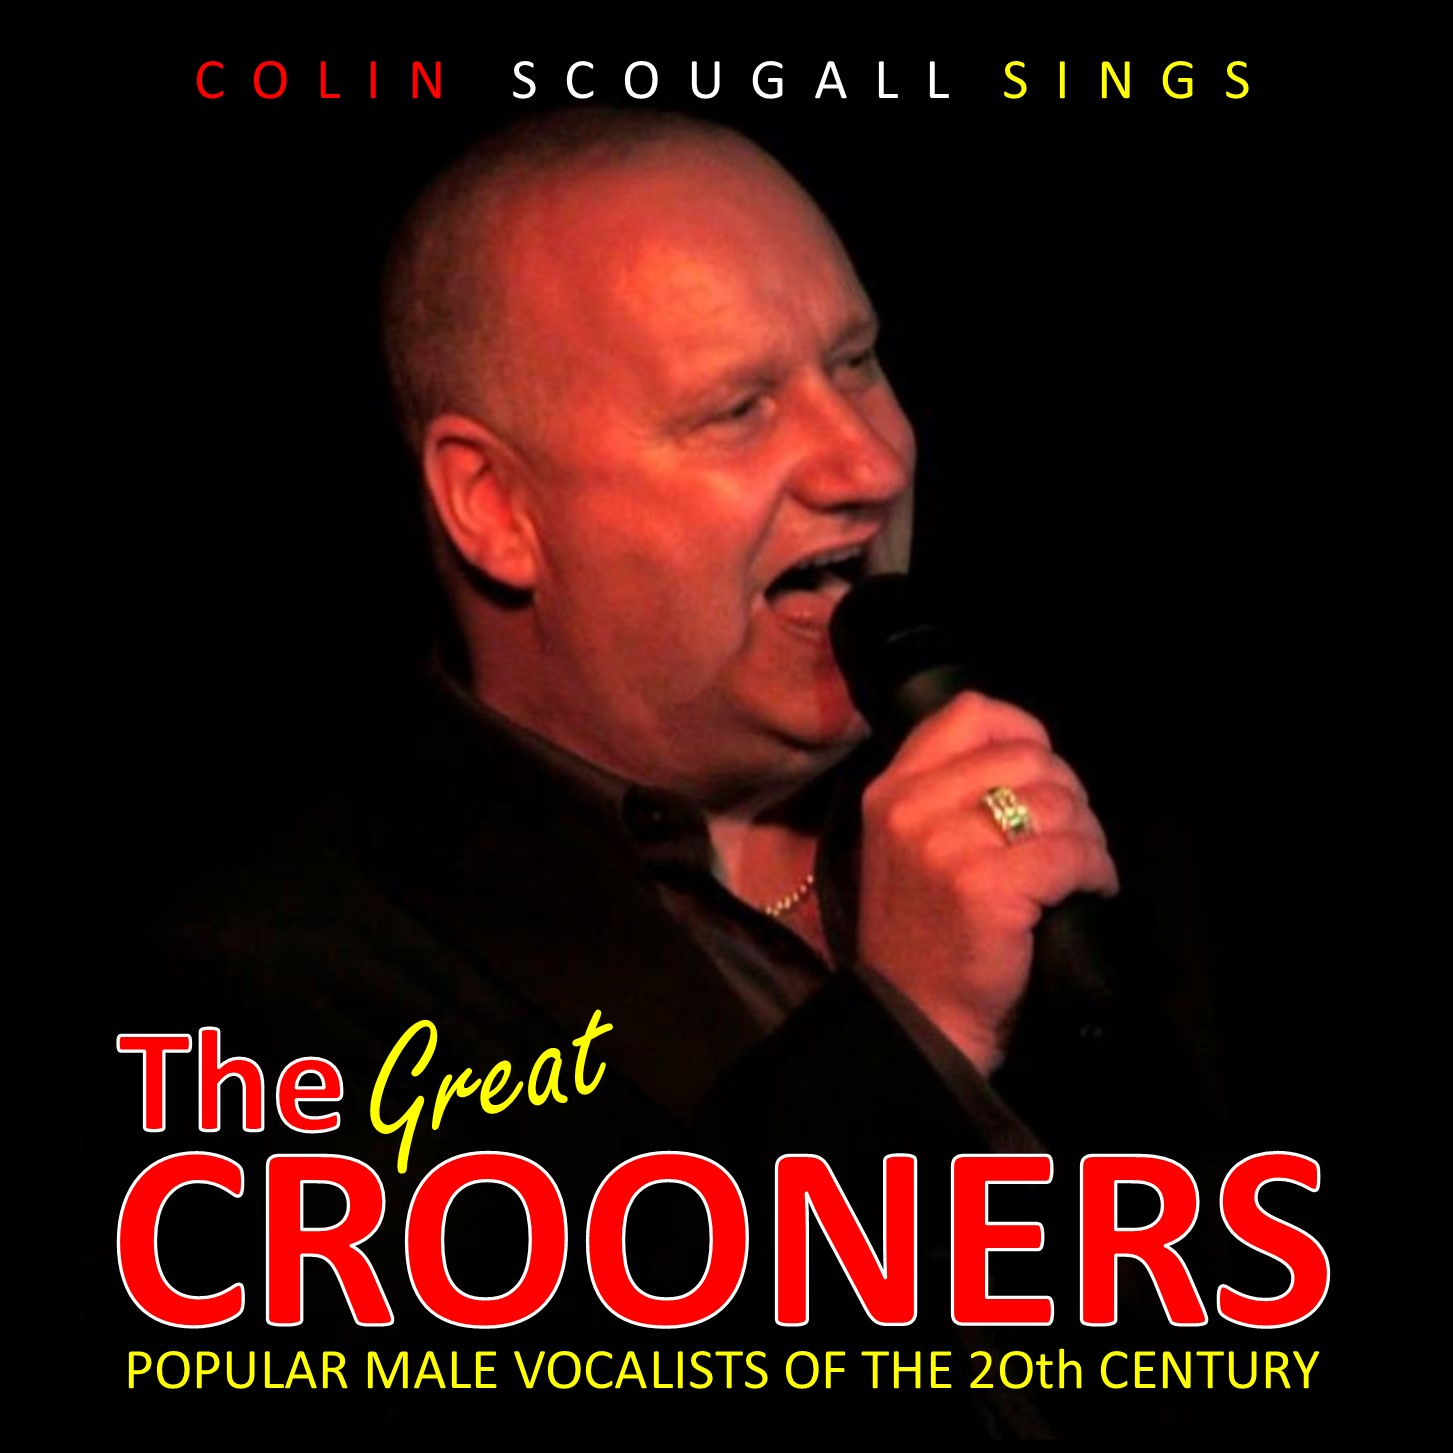 Colin Scougall - The Great Crooners (Album) - Digital Download